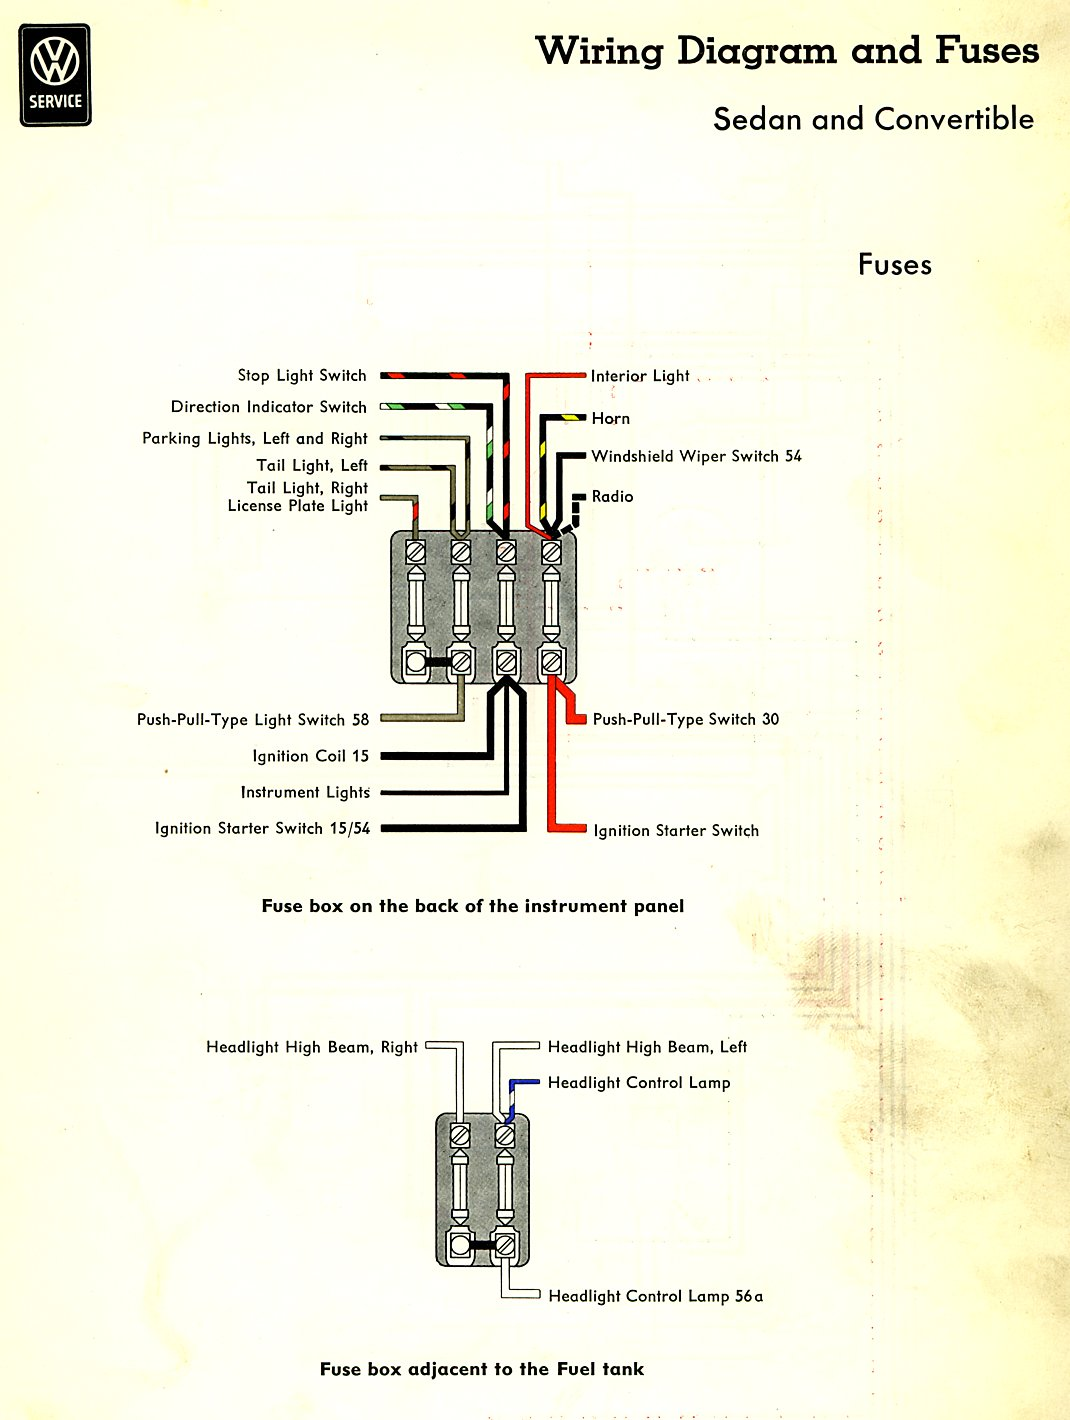 bug_58_fuses info from 1973 vw beetle fuse box diagram at readyjetset.co